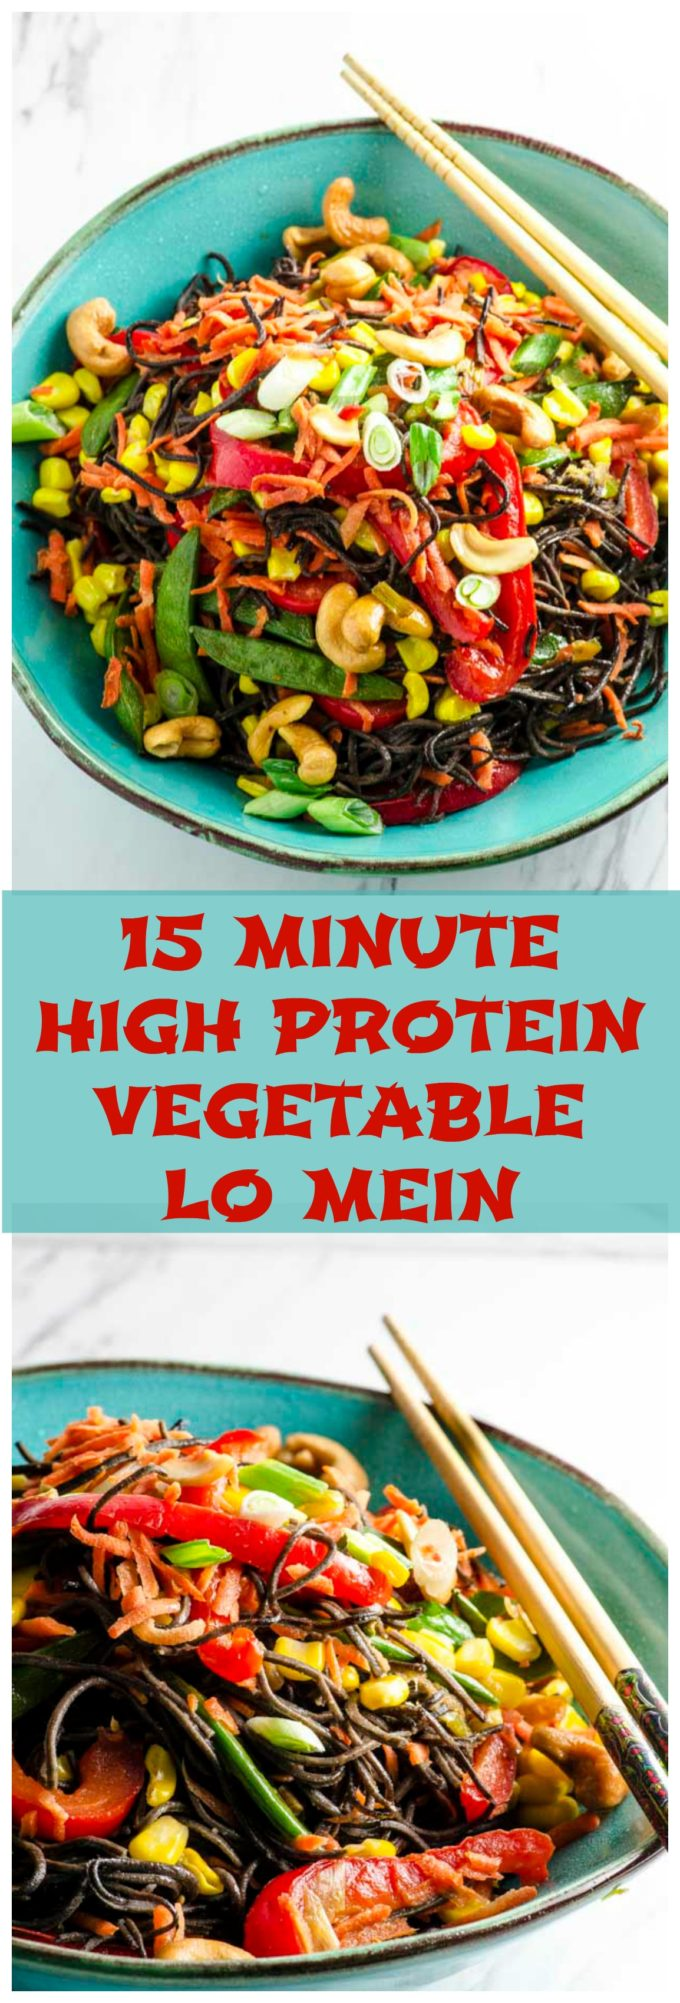 15 Minute High Protein Vegetable Lo Mein - a quick, easy, nutritious and delicious dish that is ready in a snap!